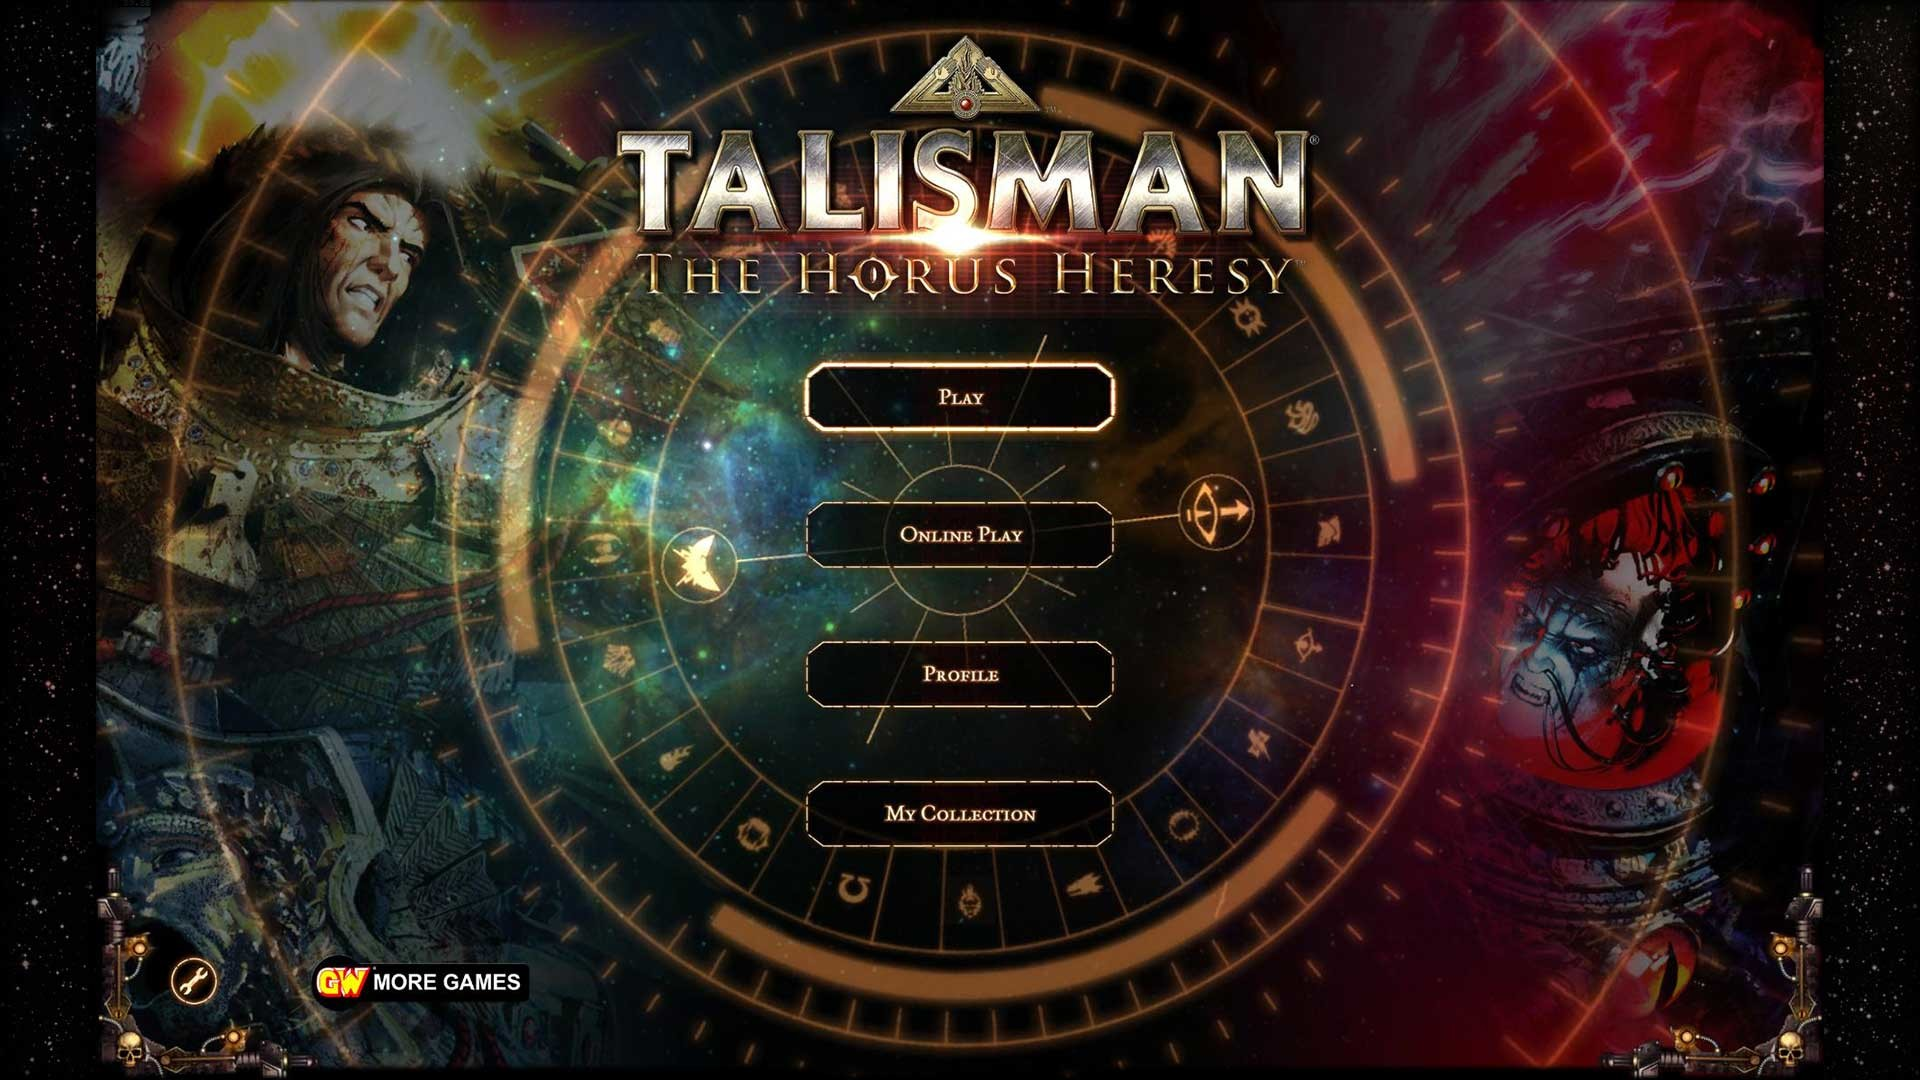 1920x1080 About Talisman: The Horus Heresy